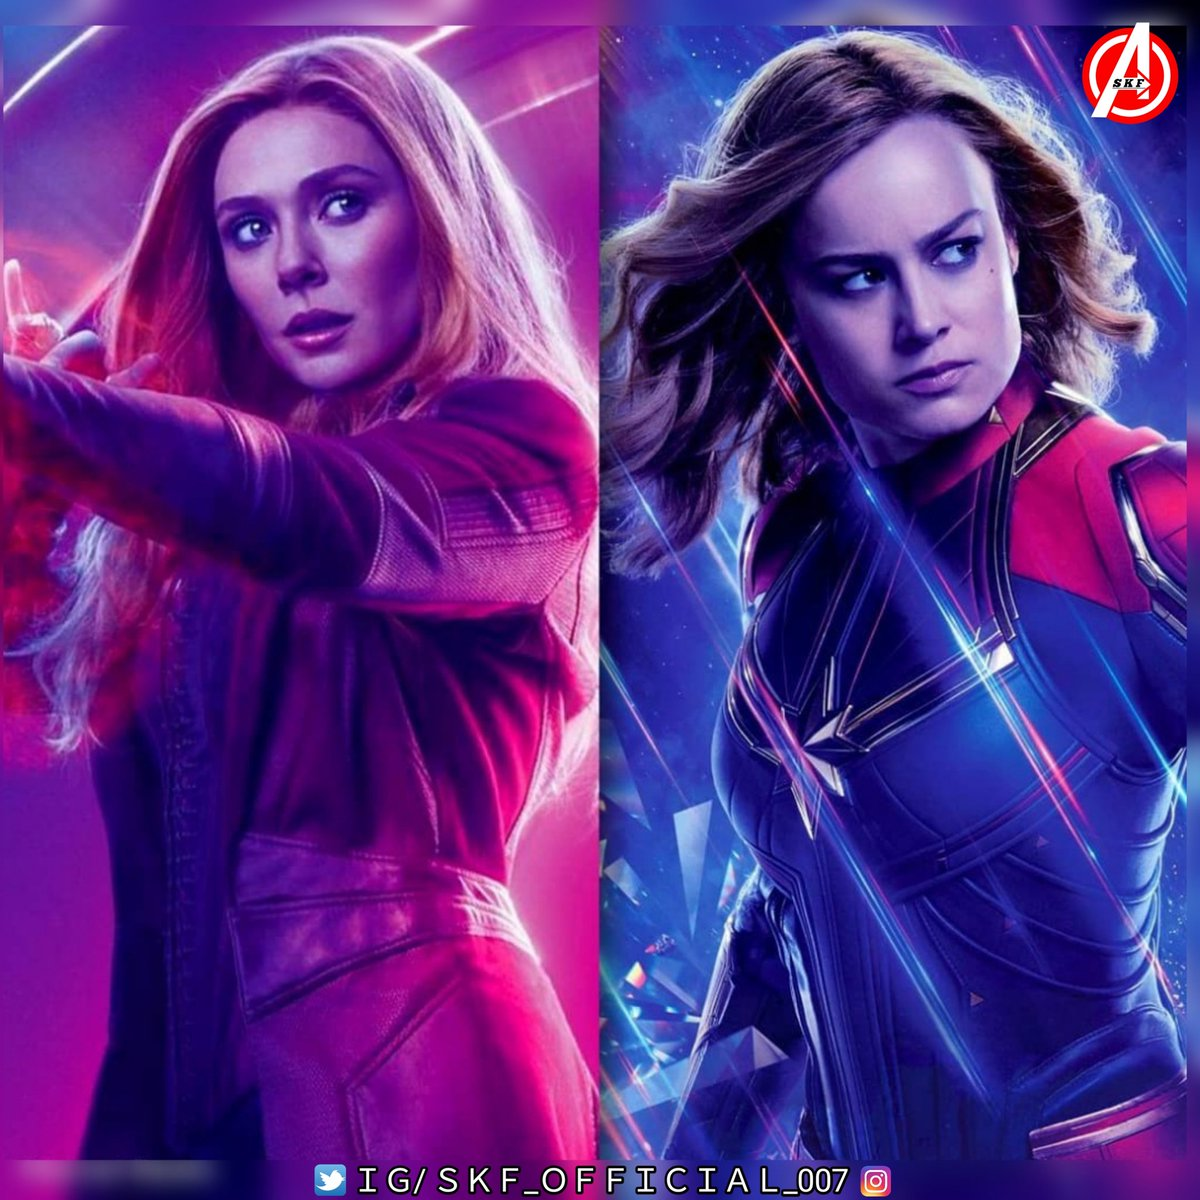 """Who is the actual """"Strongest Avenger ? Wanda maximoff ? or carol Danvers ? Comment your thoughts.#SKF_OFFICIAL_007 #mcu_qoutes #elizabetholsen #brielarson #wanda #captainmarvel #ageofultron #SKF_OFFICIAL_007 @riyadhtalukder7 @BeingRadhe20 @BeingDevilal @BeingSKTrends @beingsaud17pic.twitter.com/KFAWaxlWFf"""